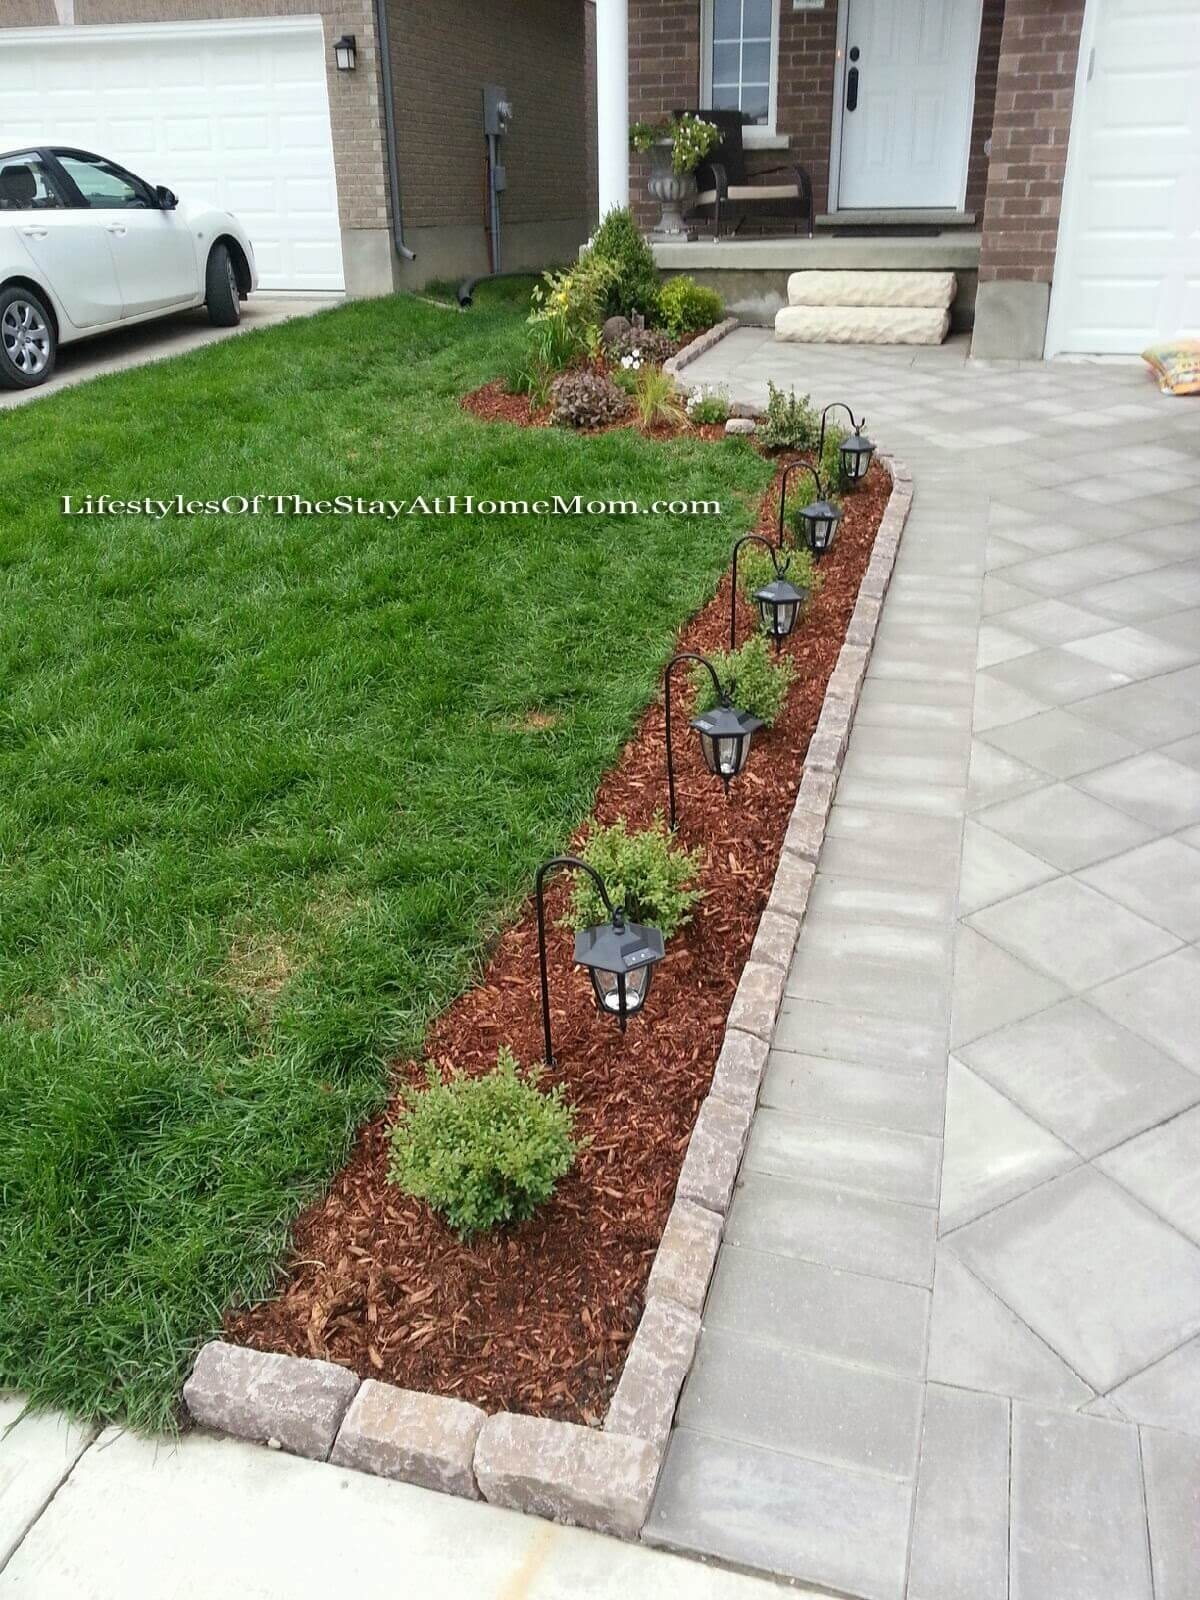 10 Lovely Landscaping Ideas For Front Yards 50 best front yard landscaping ideas and garden designs for 2018 5 2021